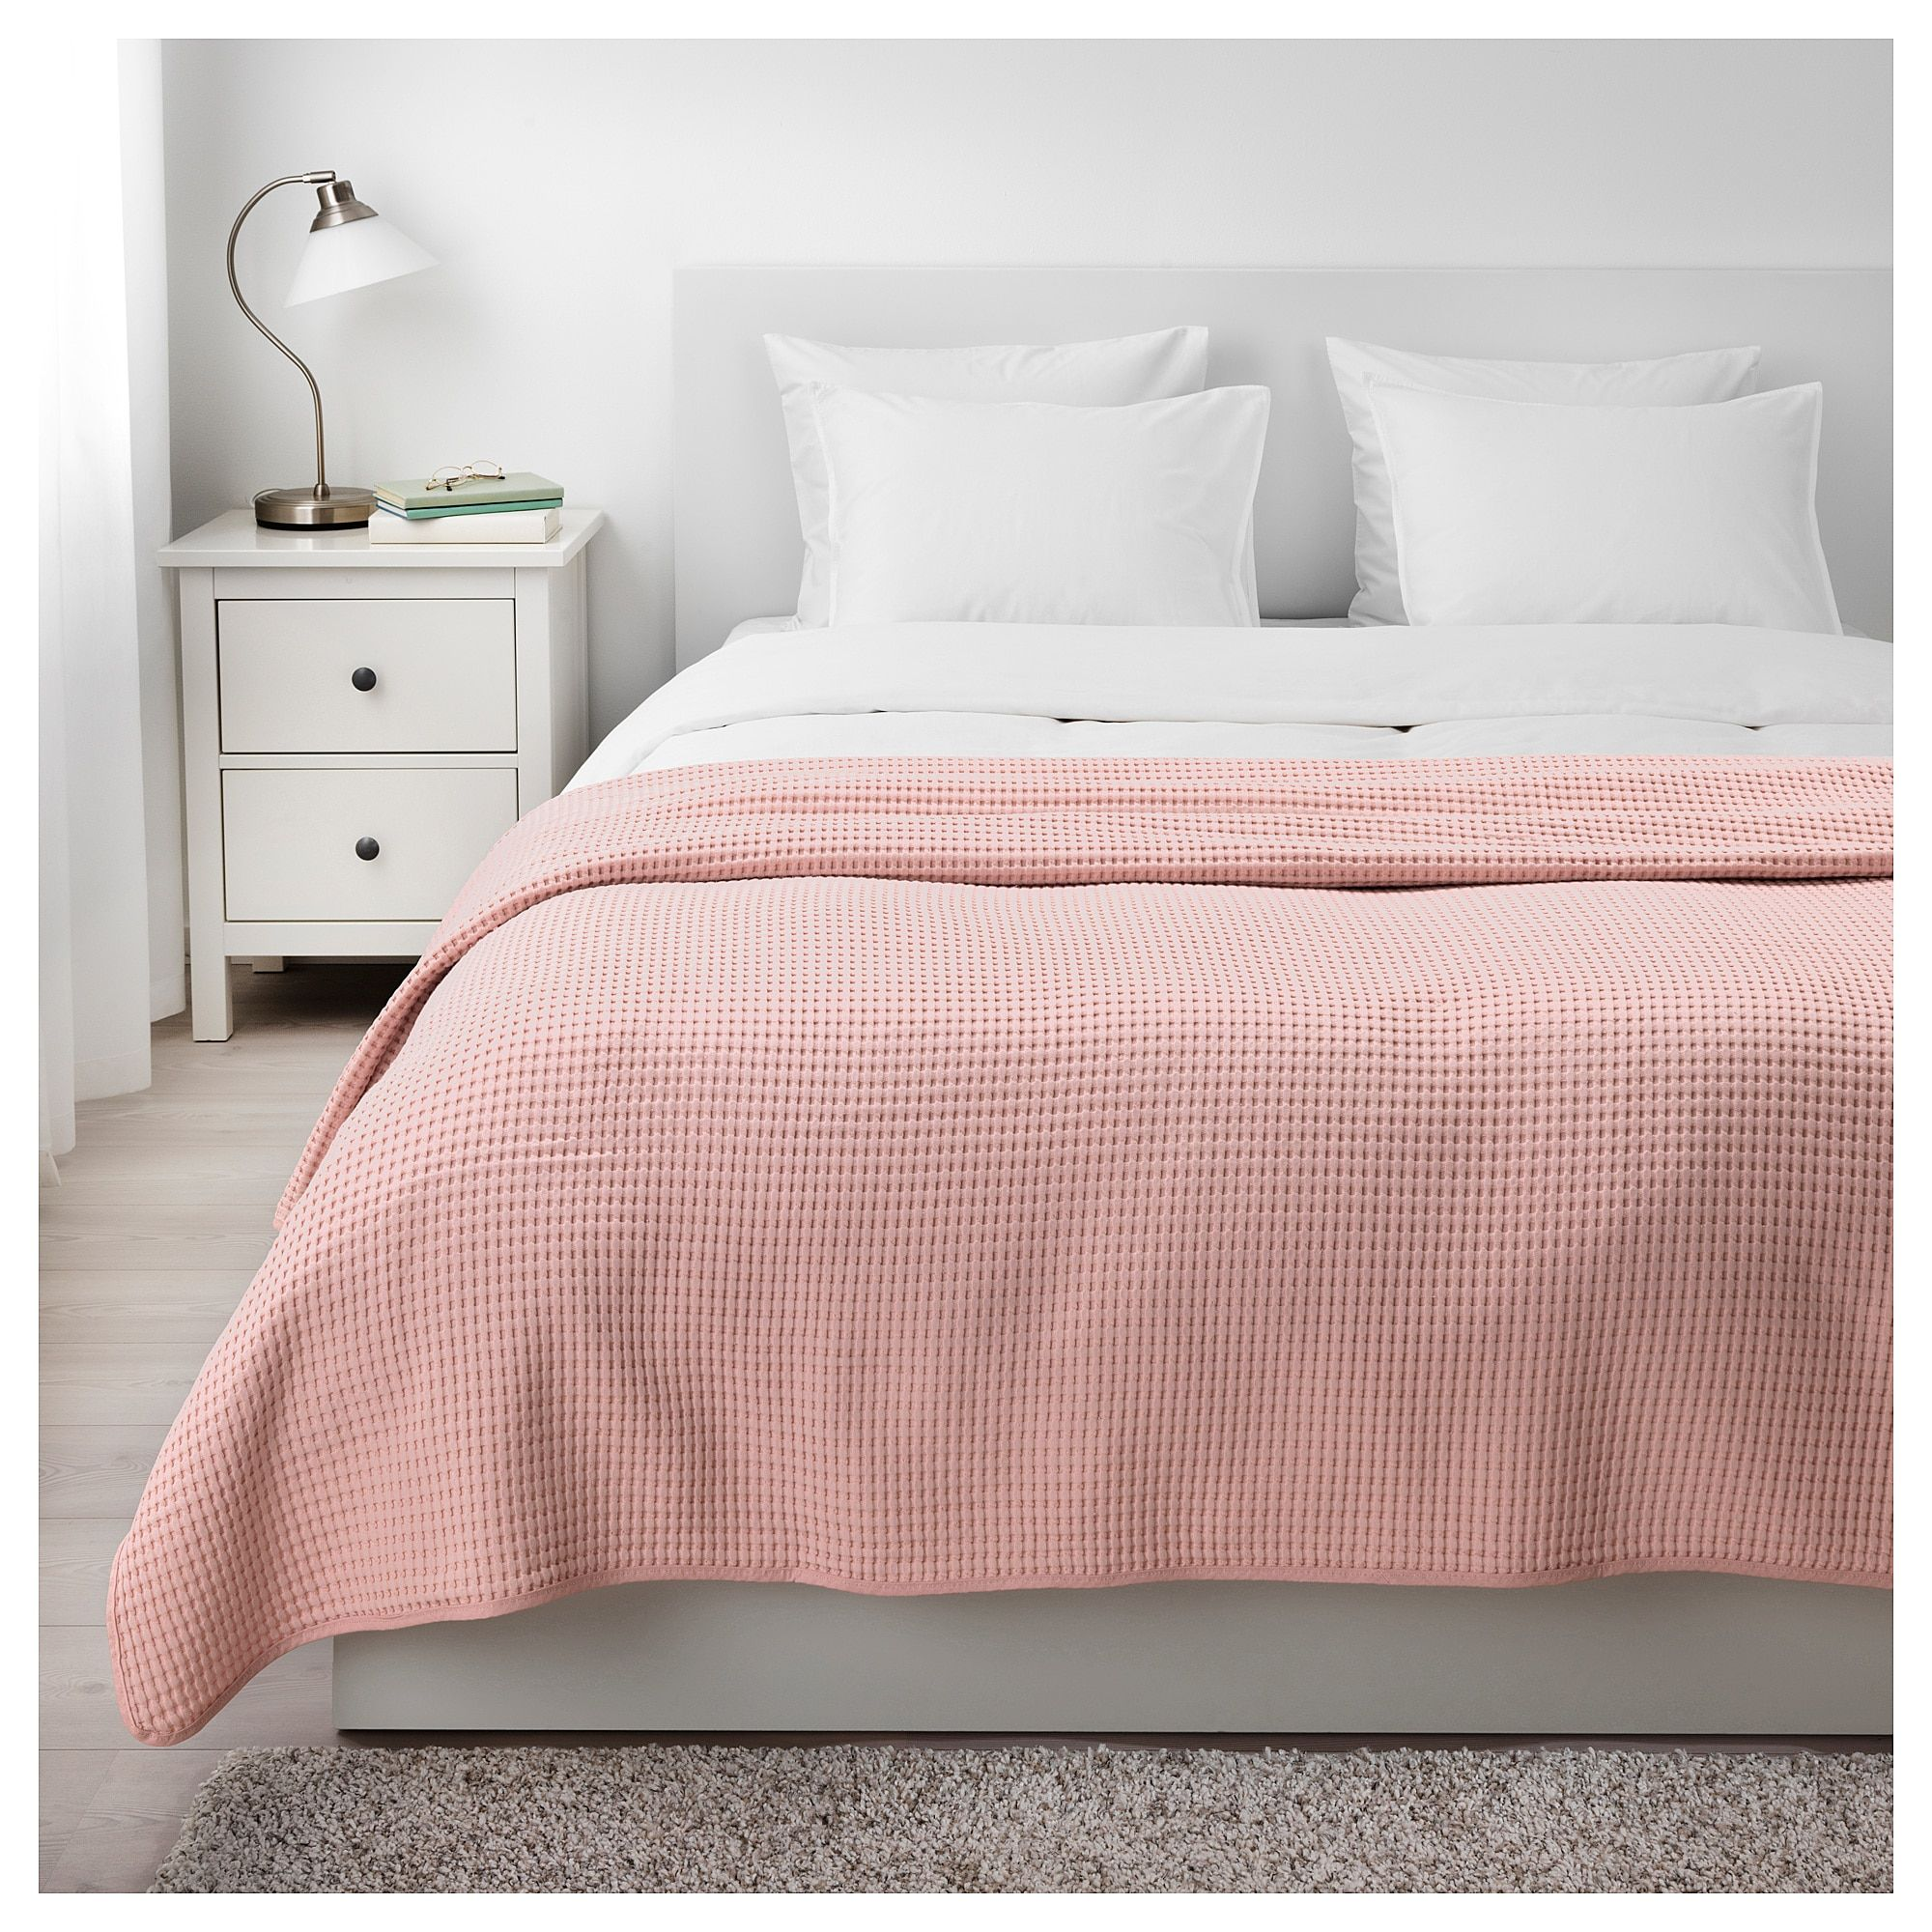 Ikea.at Tagesdecke VÅreld Tagesdecke Hellrosa Products In 2019 Rosa